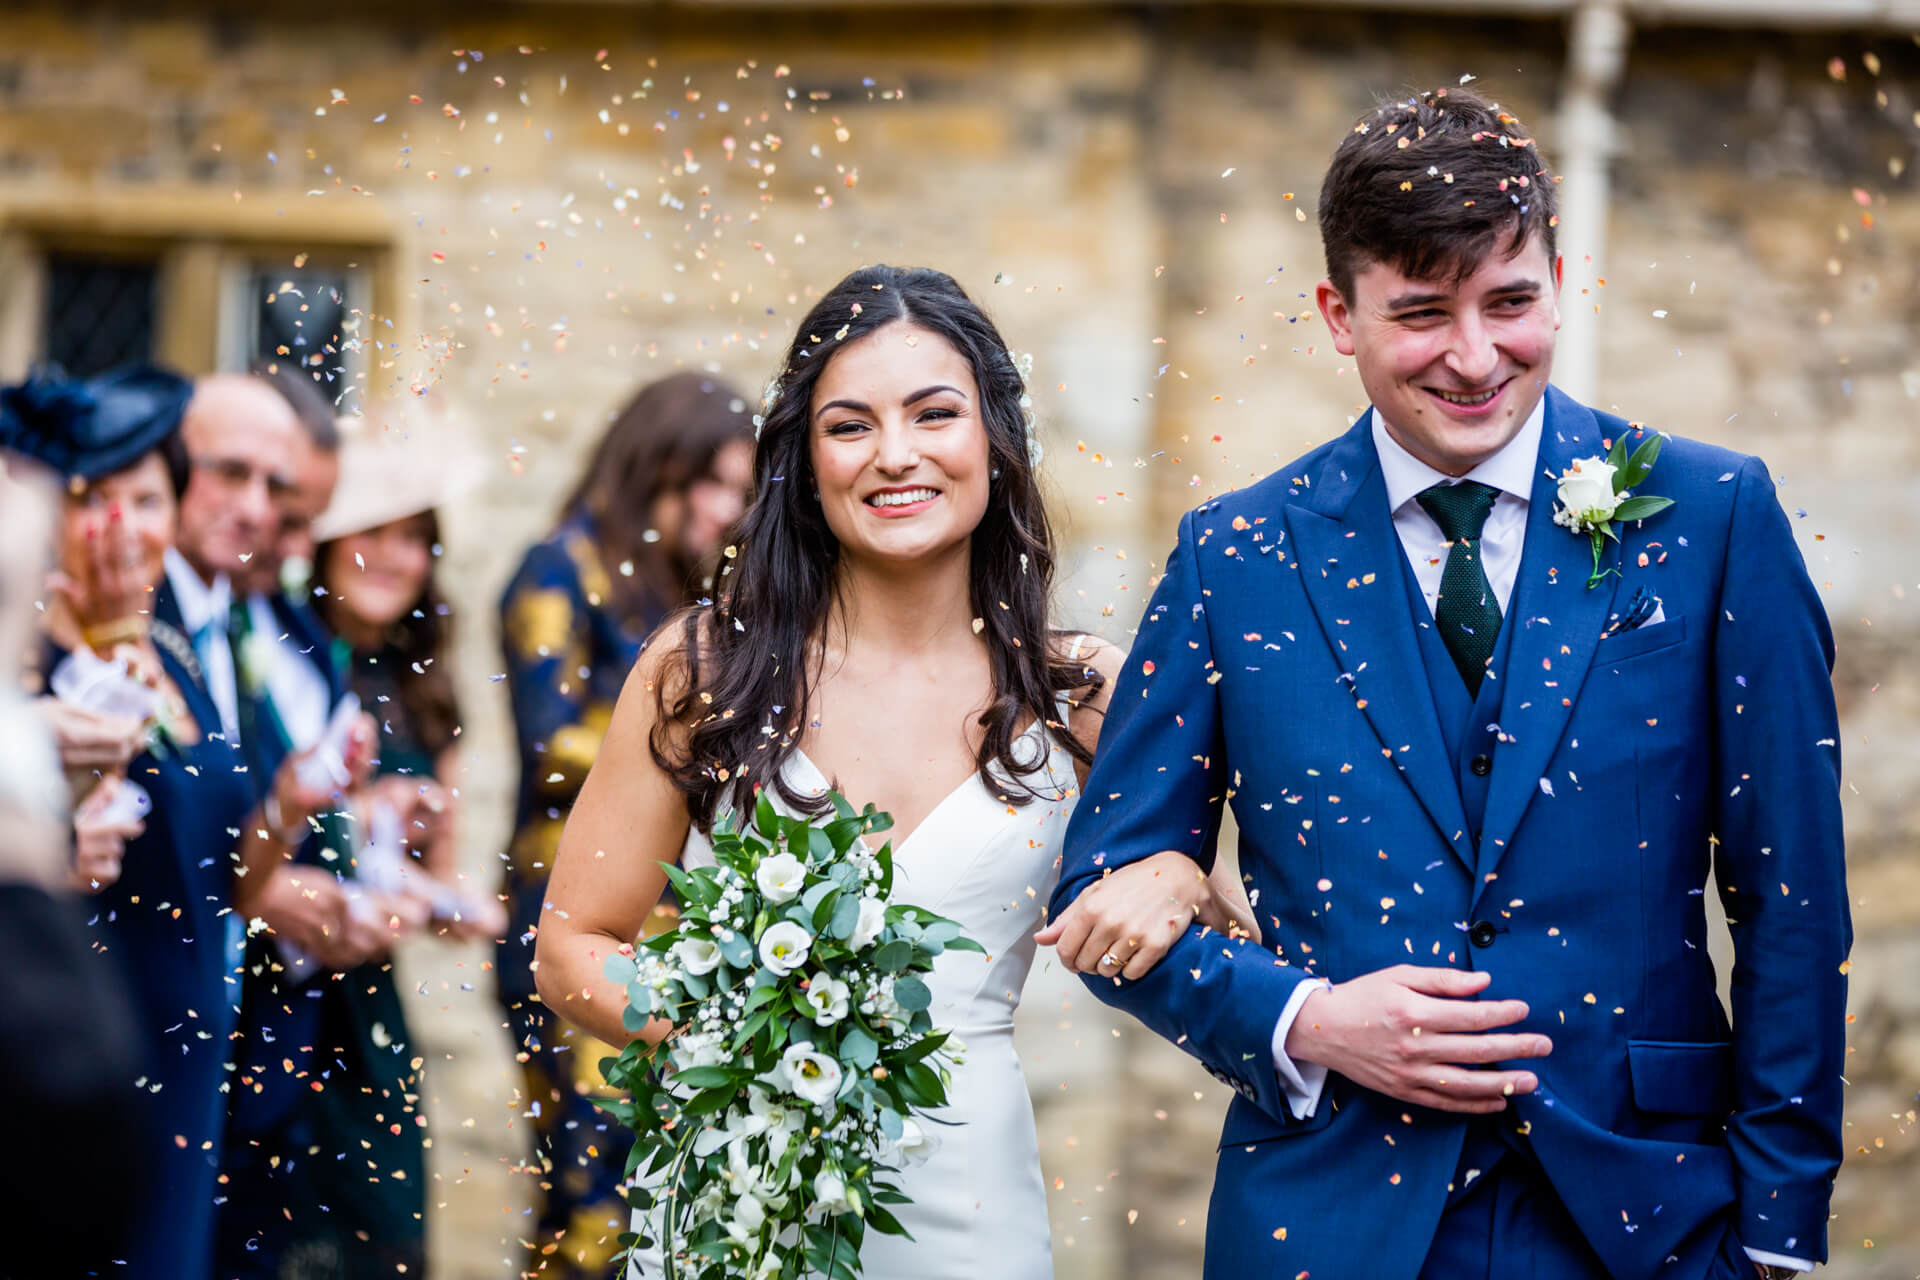 bride and groom smiling as they walk through a confetti shower